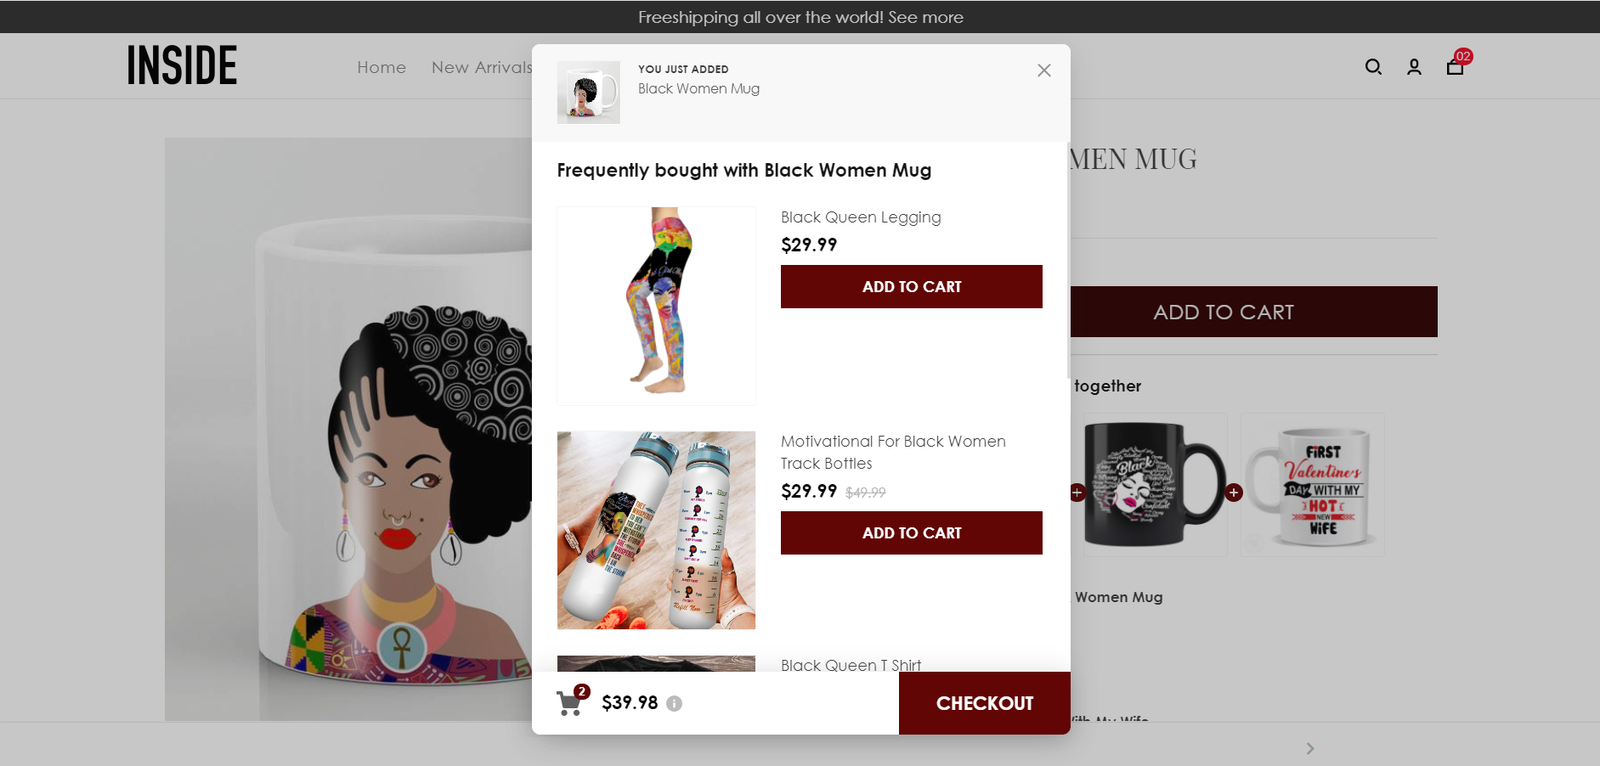 Pre-purchase will recommend other products to customers as soon as the customer clicks the Add To Cart button. Recommended products will help encourage customers to add more products to their shopping cart.